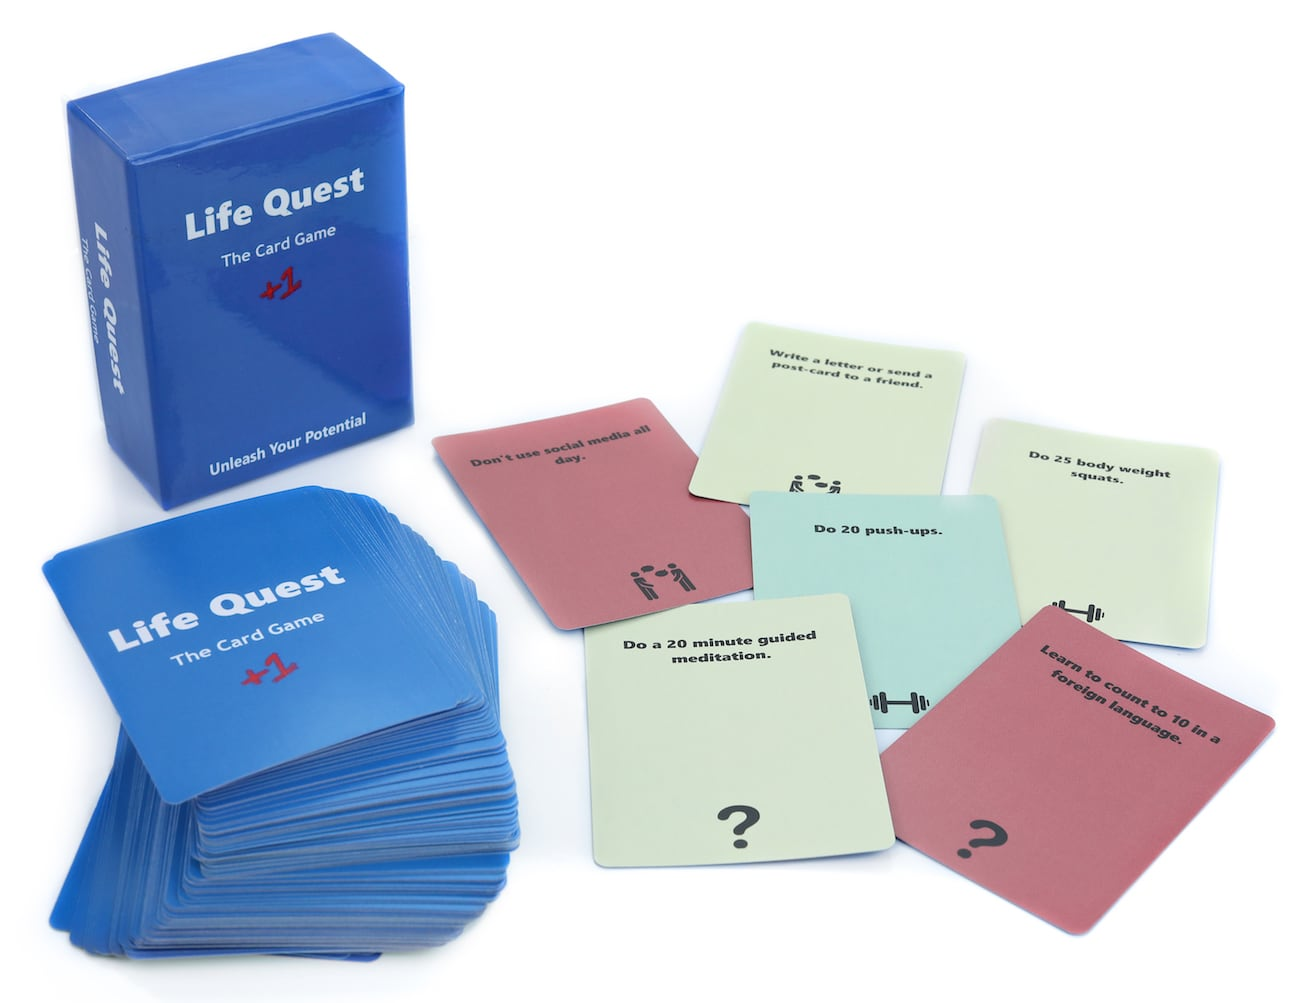 Life Quest Self Improvement Card Game